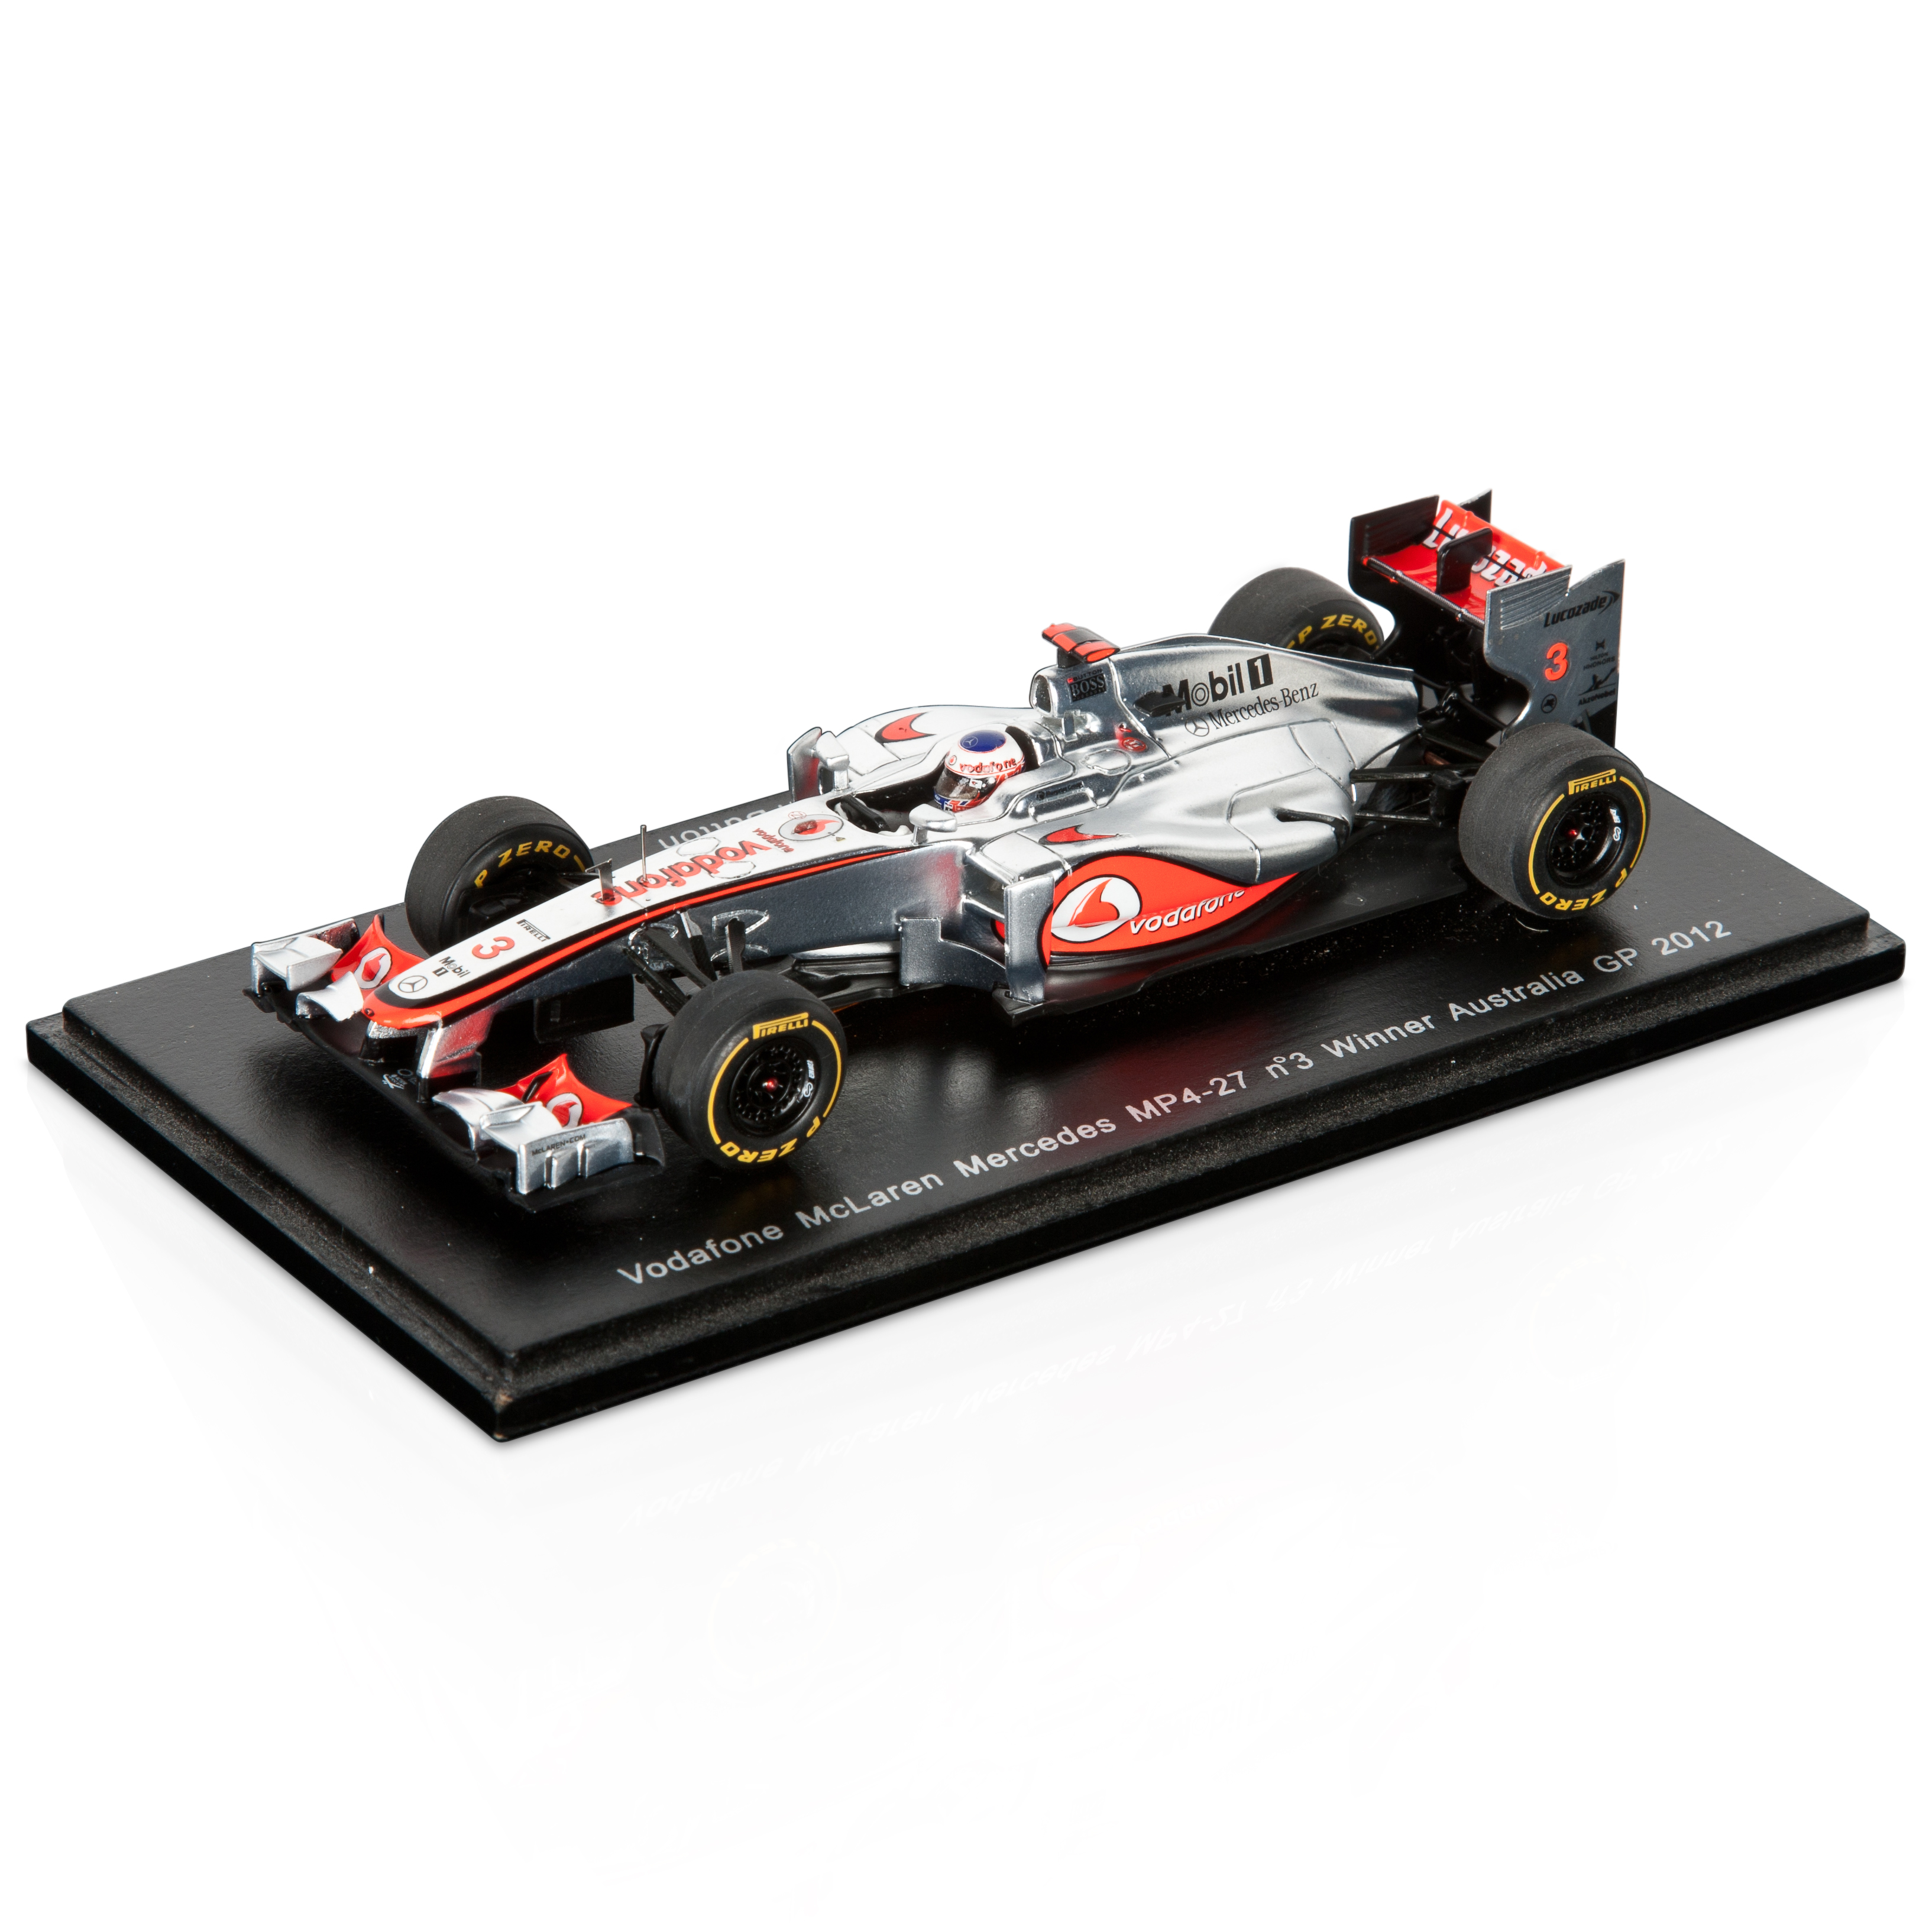 Vodafone McLaren Mercedes Vodafone McLaren MP4-27 Jenson Button Winner Australian GP 2012 1:43 Scale